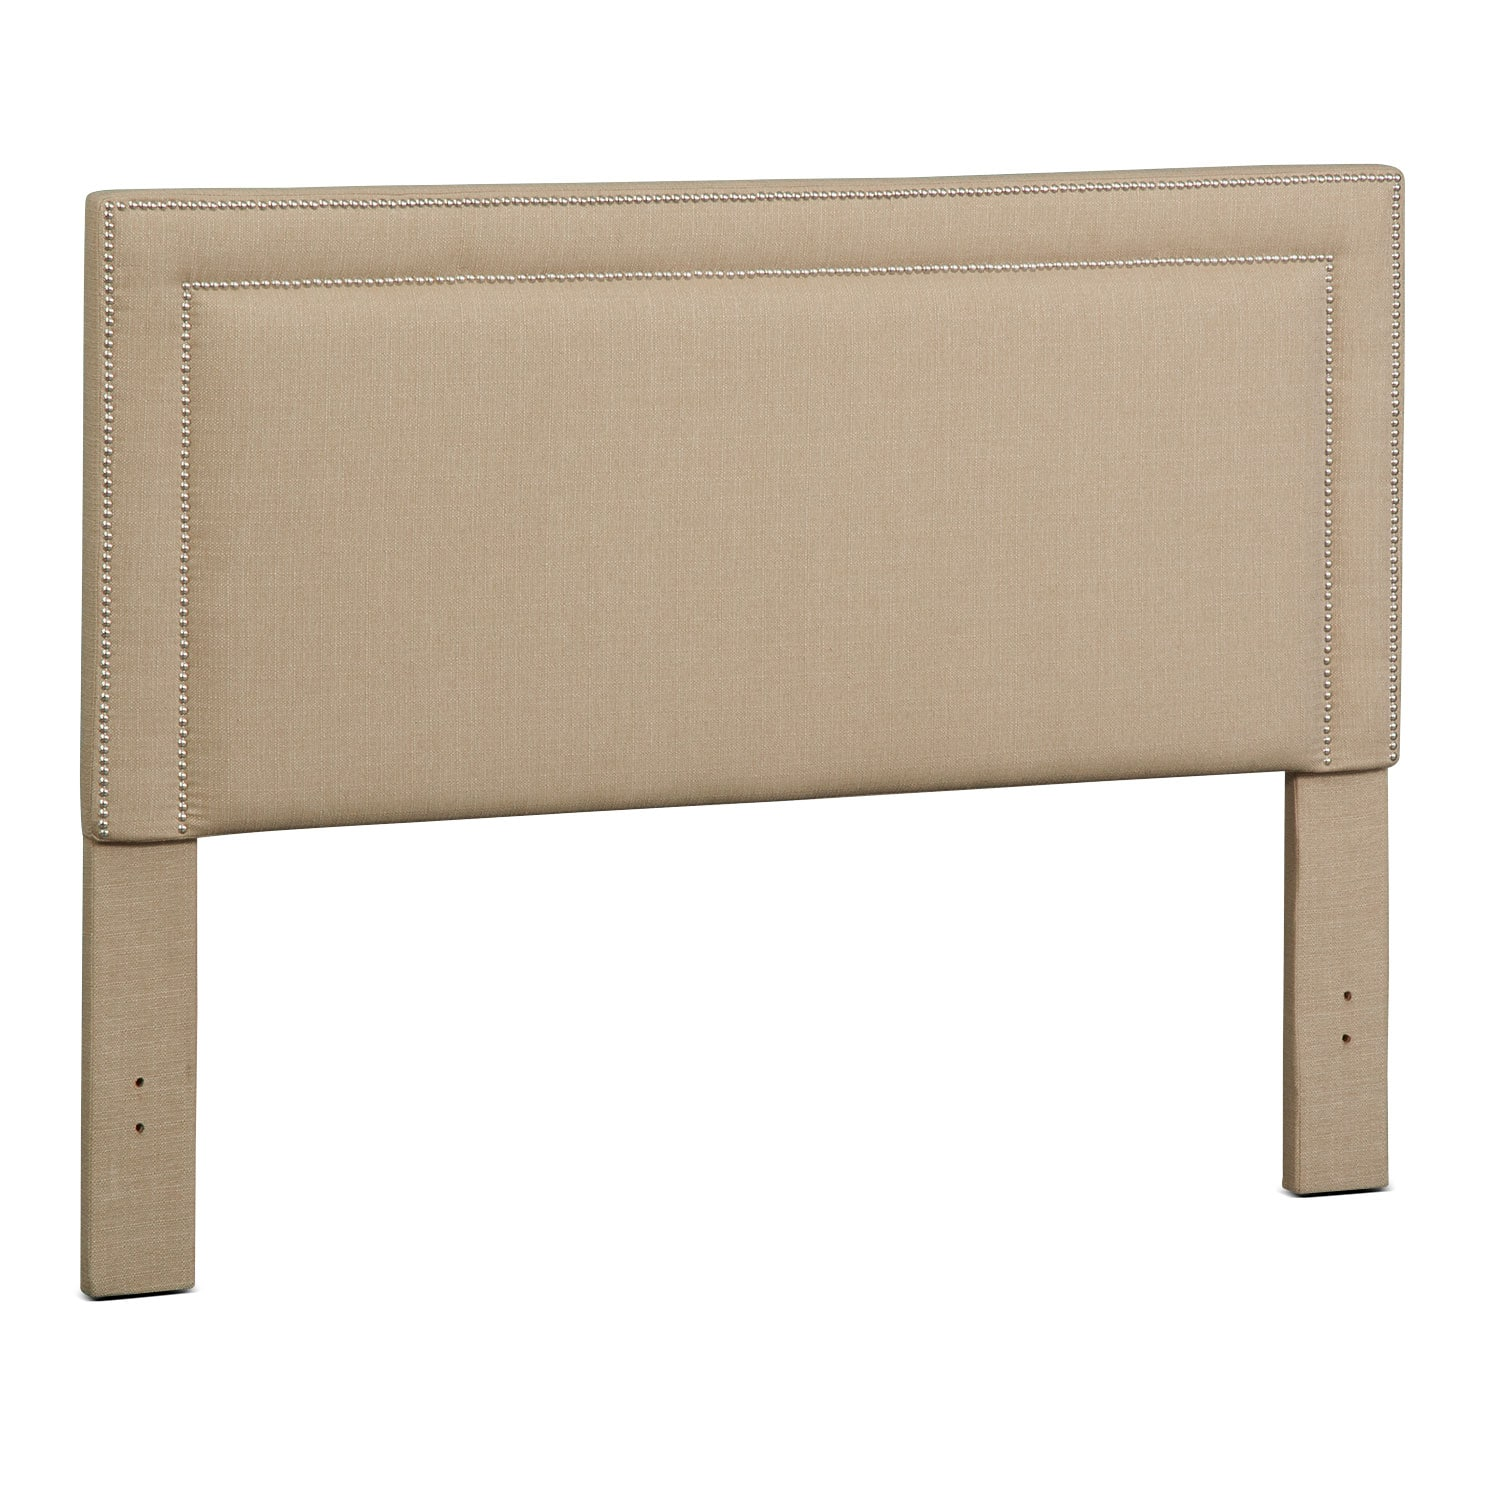 Natalie King Upholstered Headboard - Tan